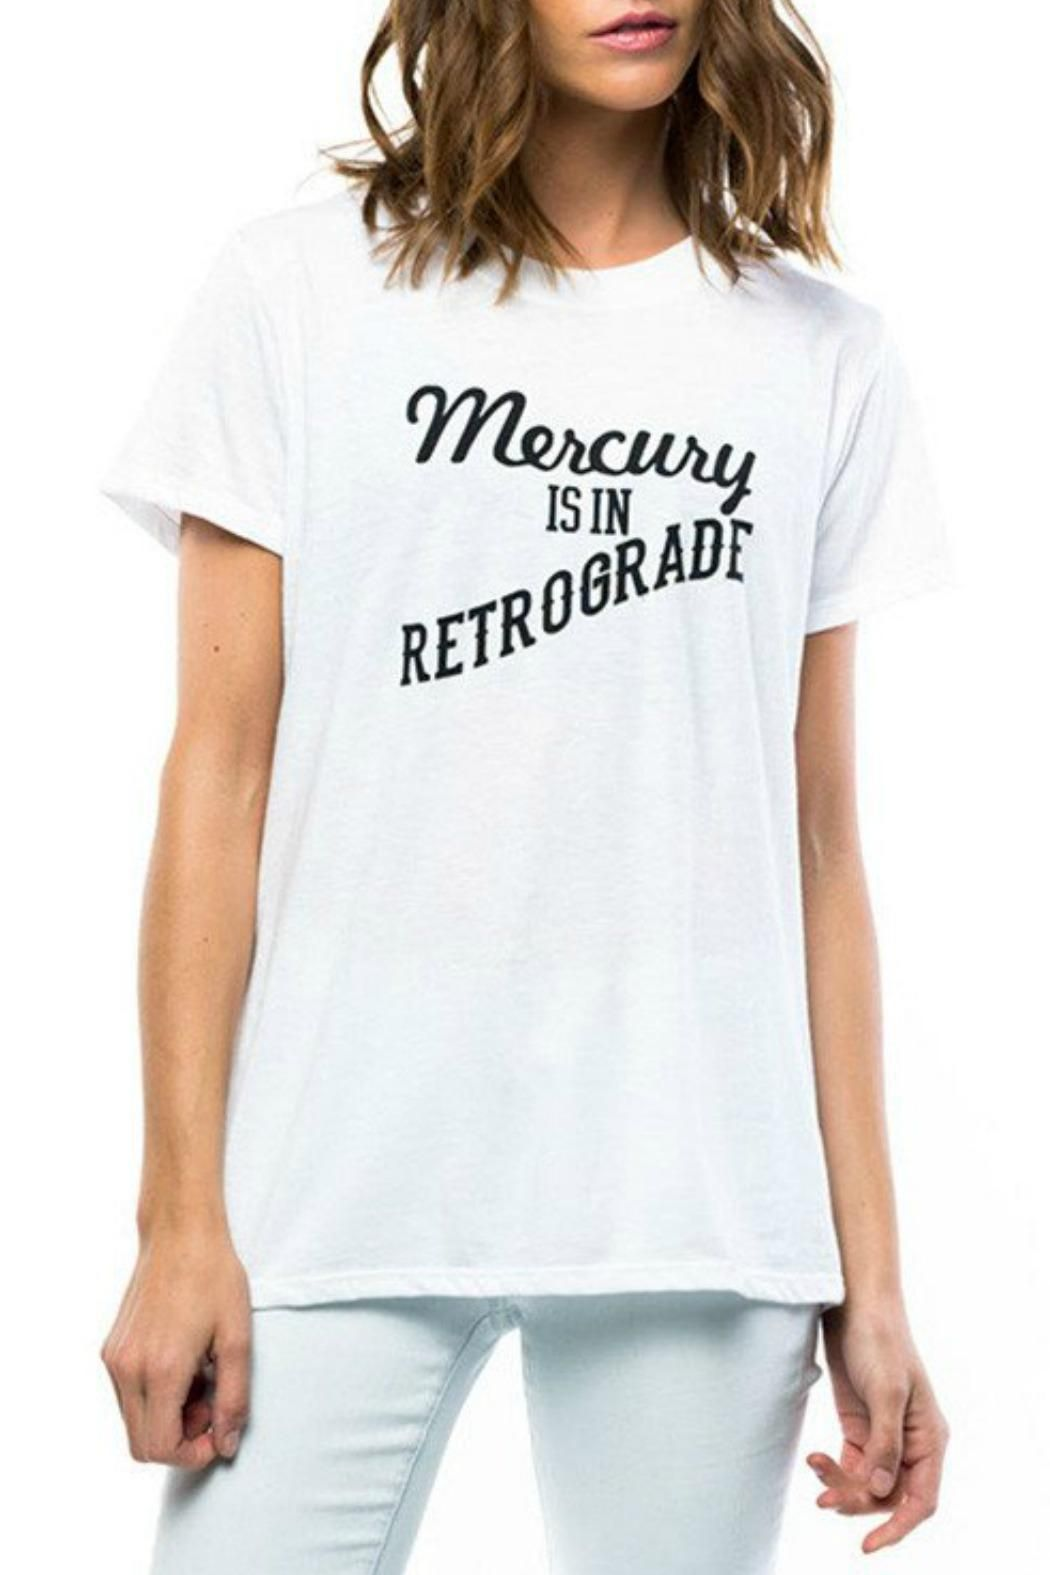 e7a253178ca7 Loose fit triblend jersey tee with Mercury is in Retrograde graphic.  Machine Wash Mercury Retrograde